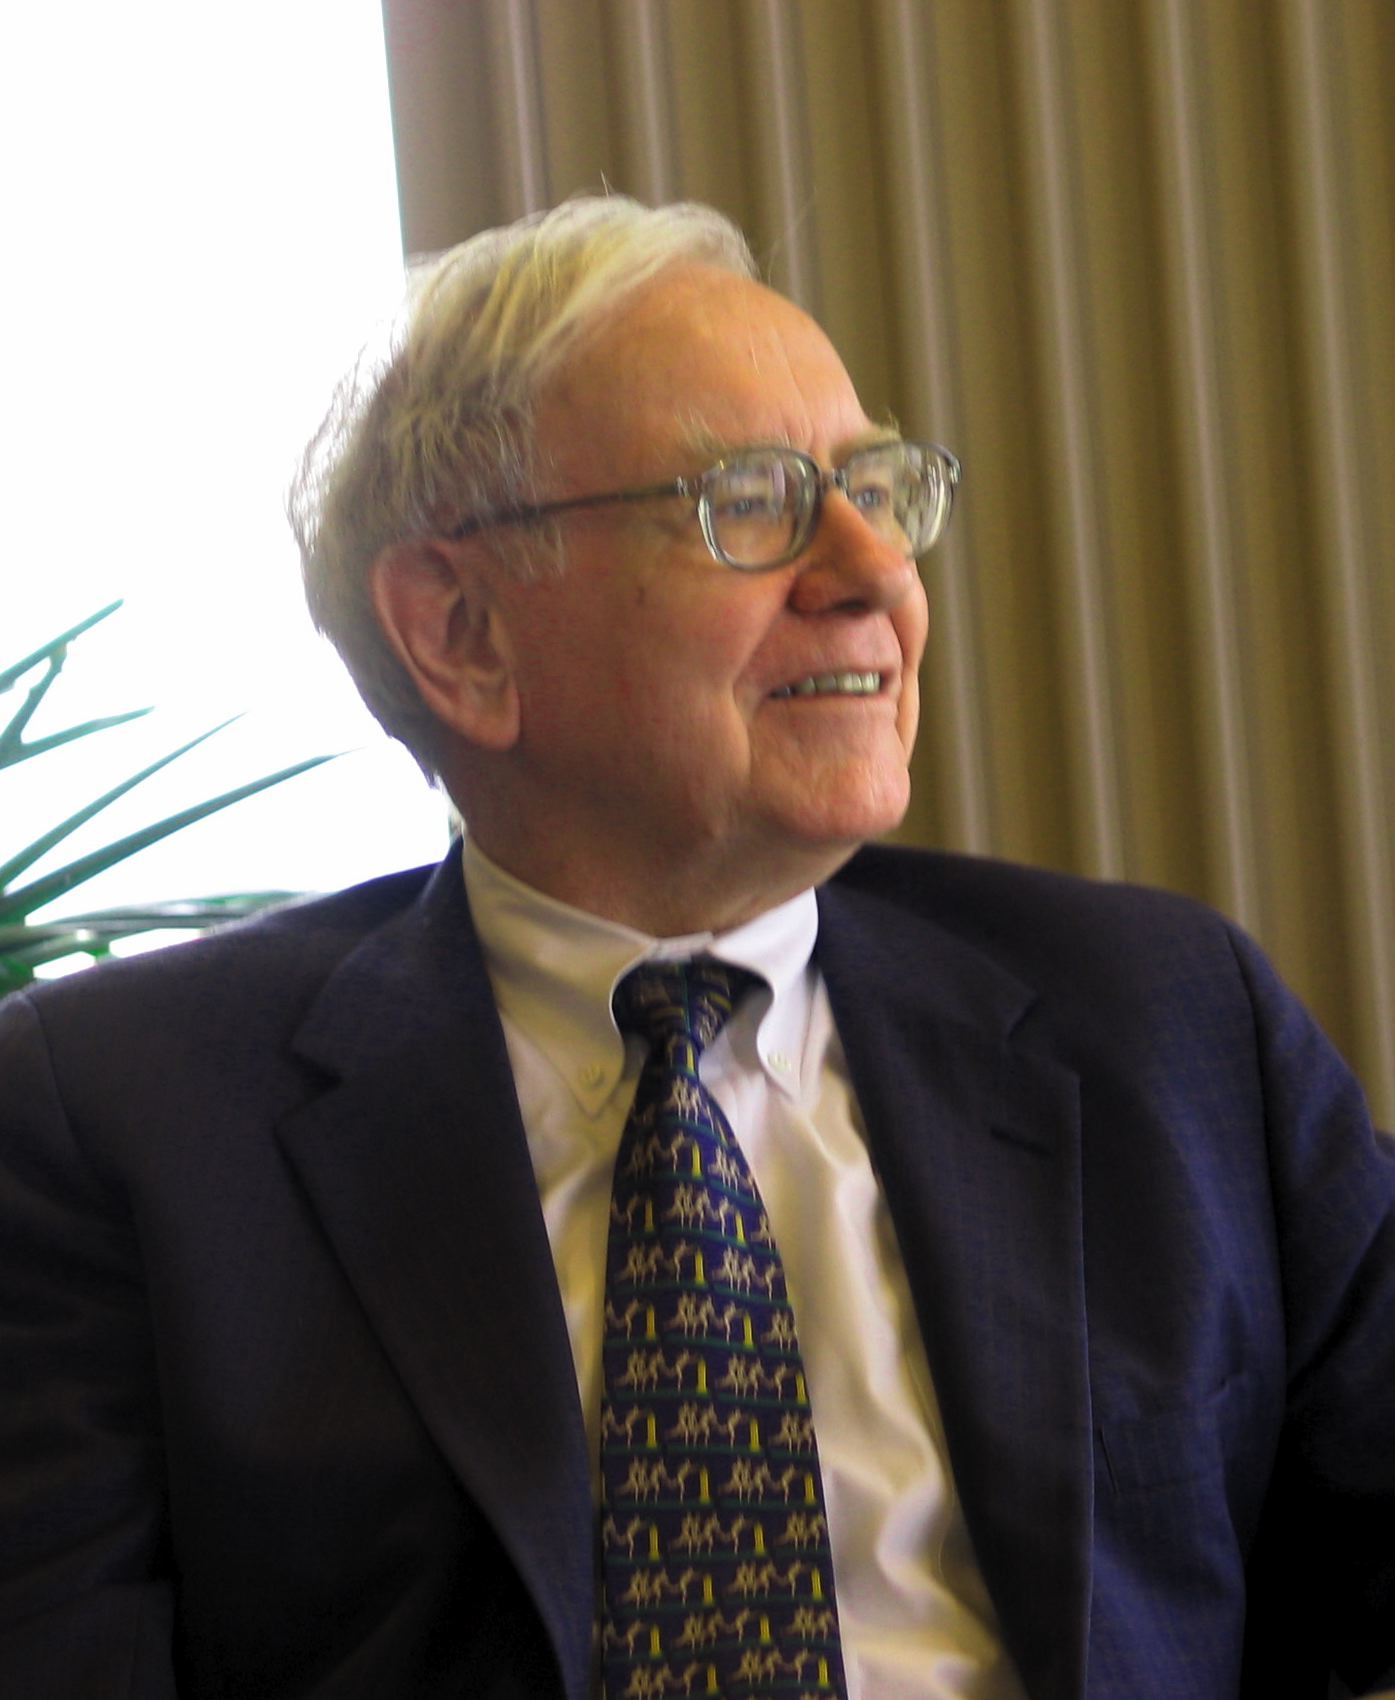 http://upload.wikimedia.org/wikipedia/commons/5/51/Warren_Buffett_KU_Visit.jpg